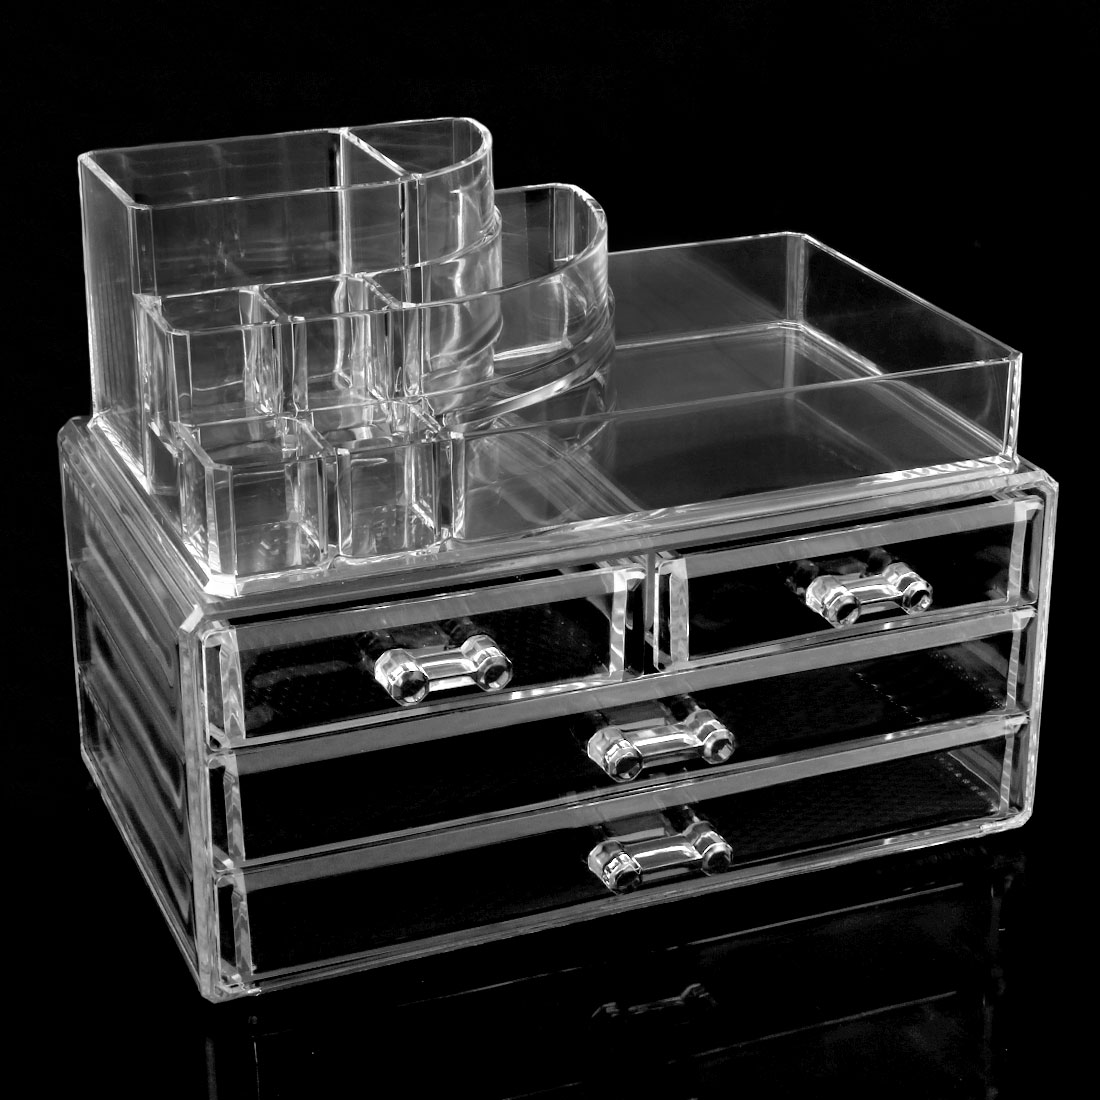 Unique Bargains Acrylic Jewelry & Cosmetic Storage Display Boxes Countertop Makeup Organizer Drawers Two Pieces Set